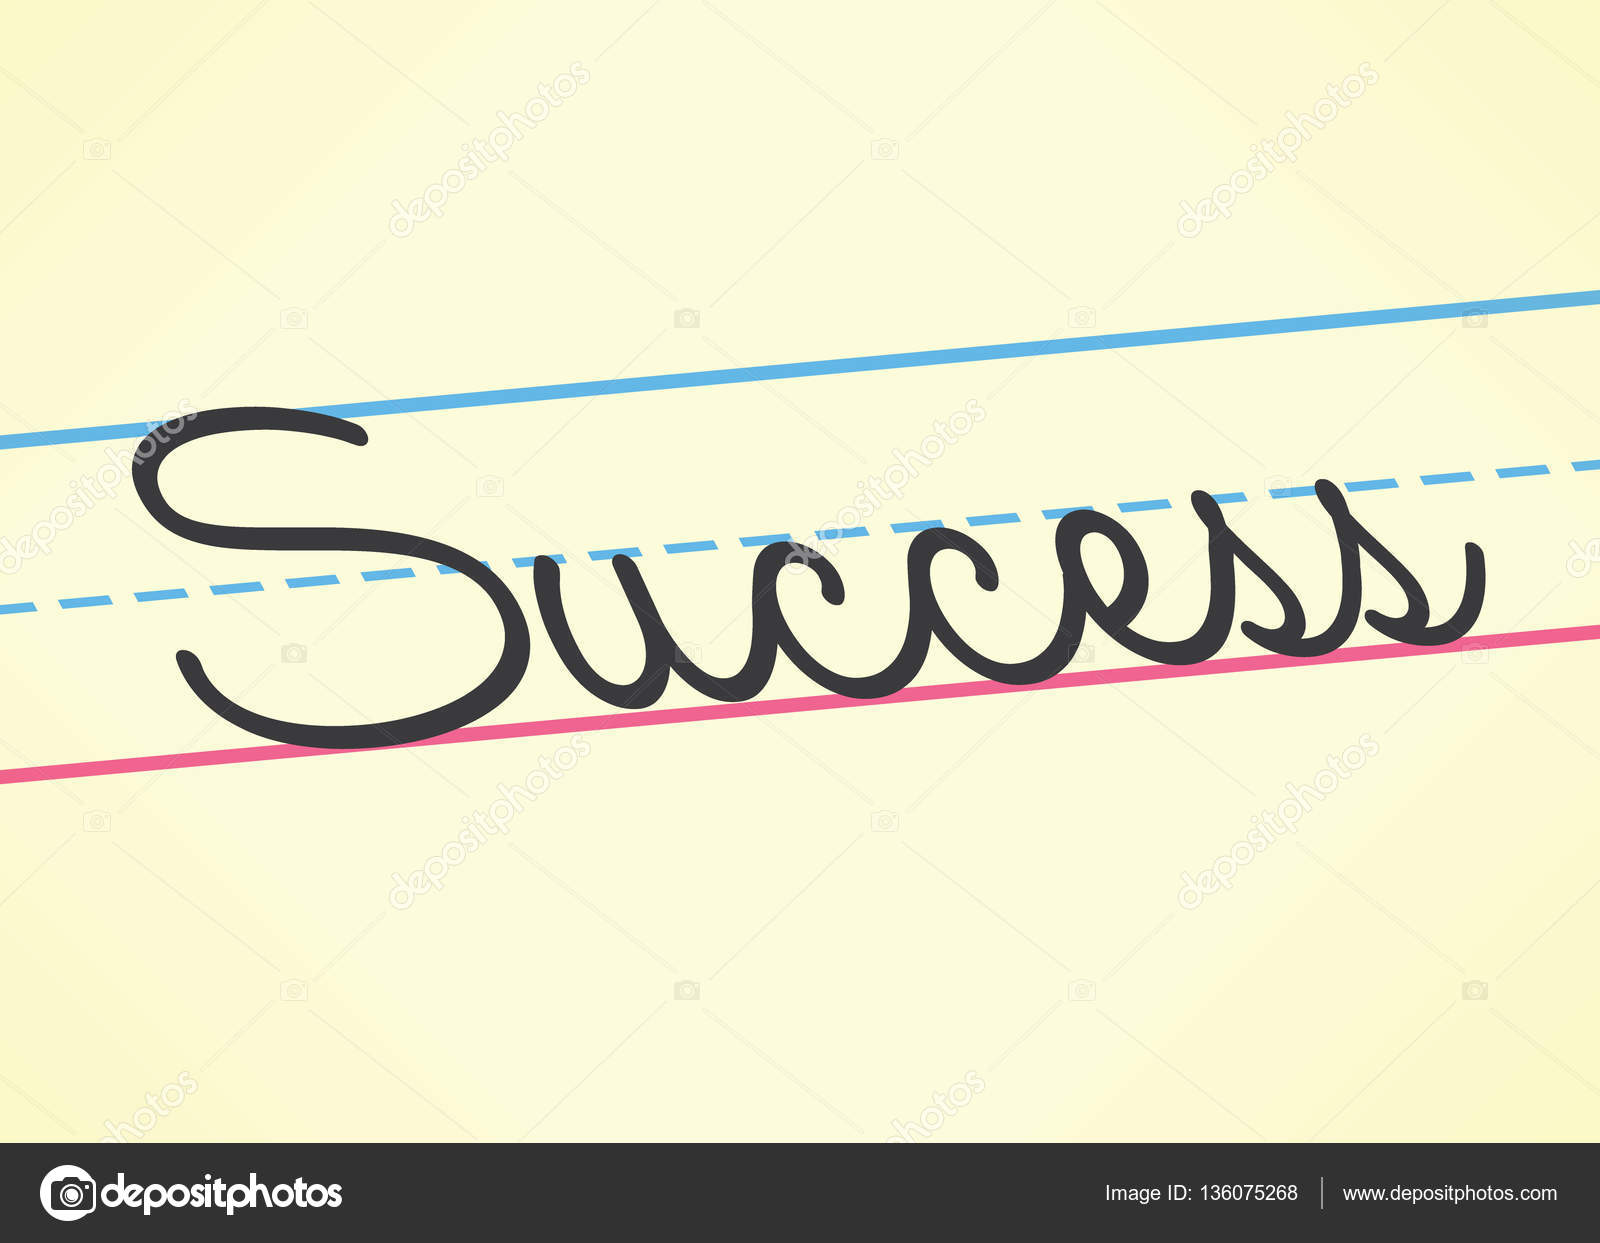 Success cursive word handwritten in children education style